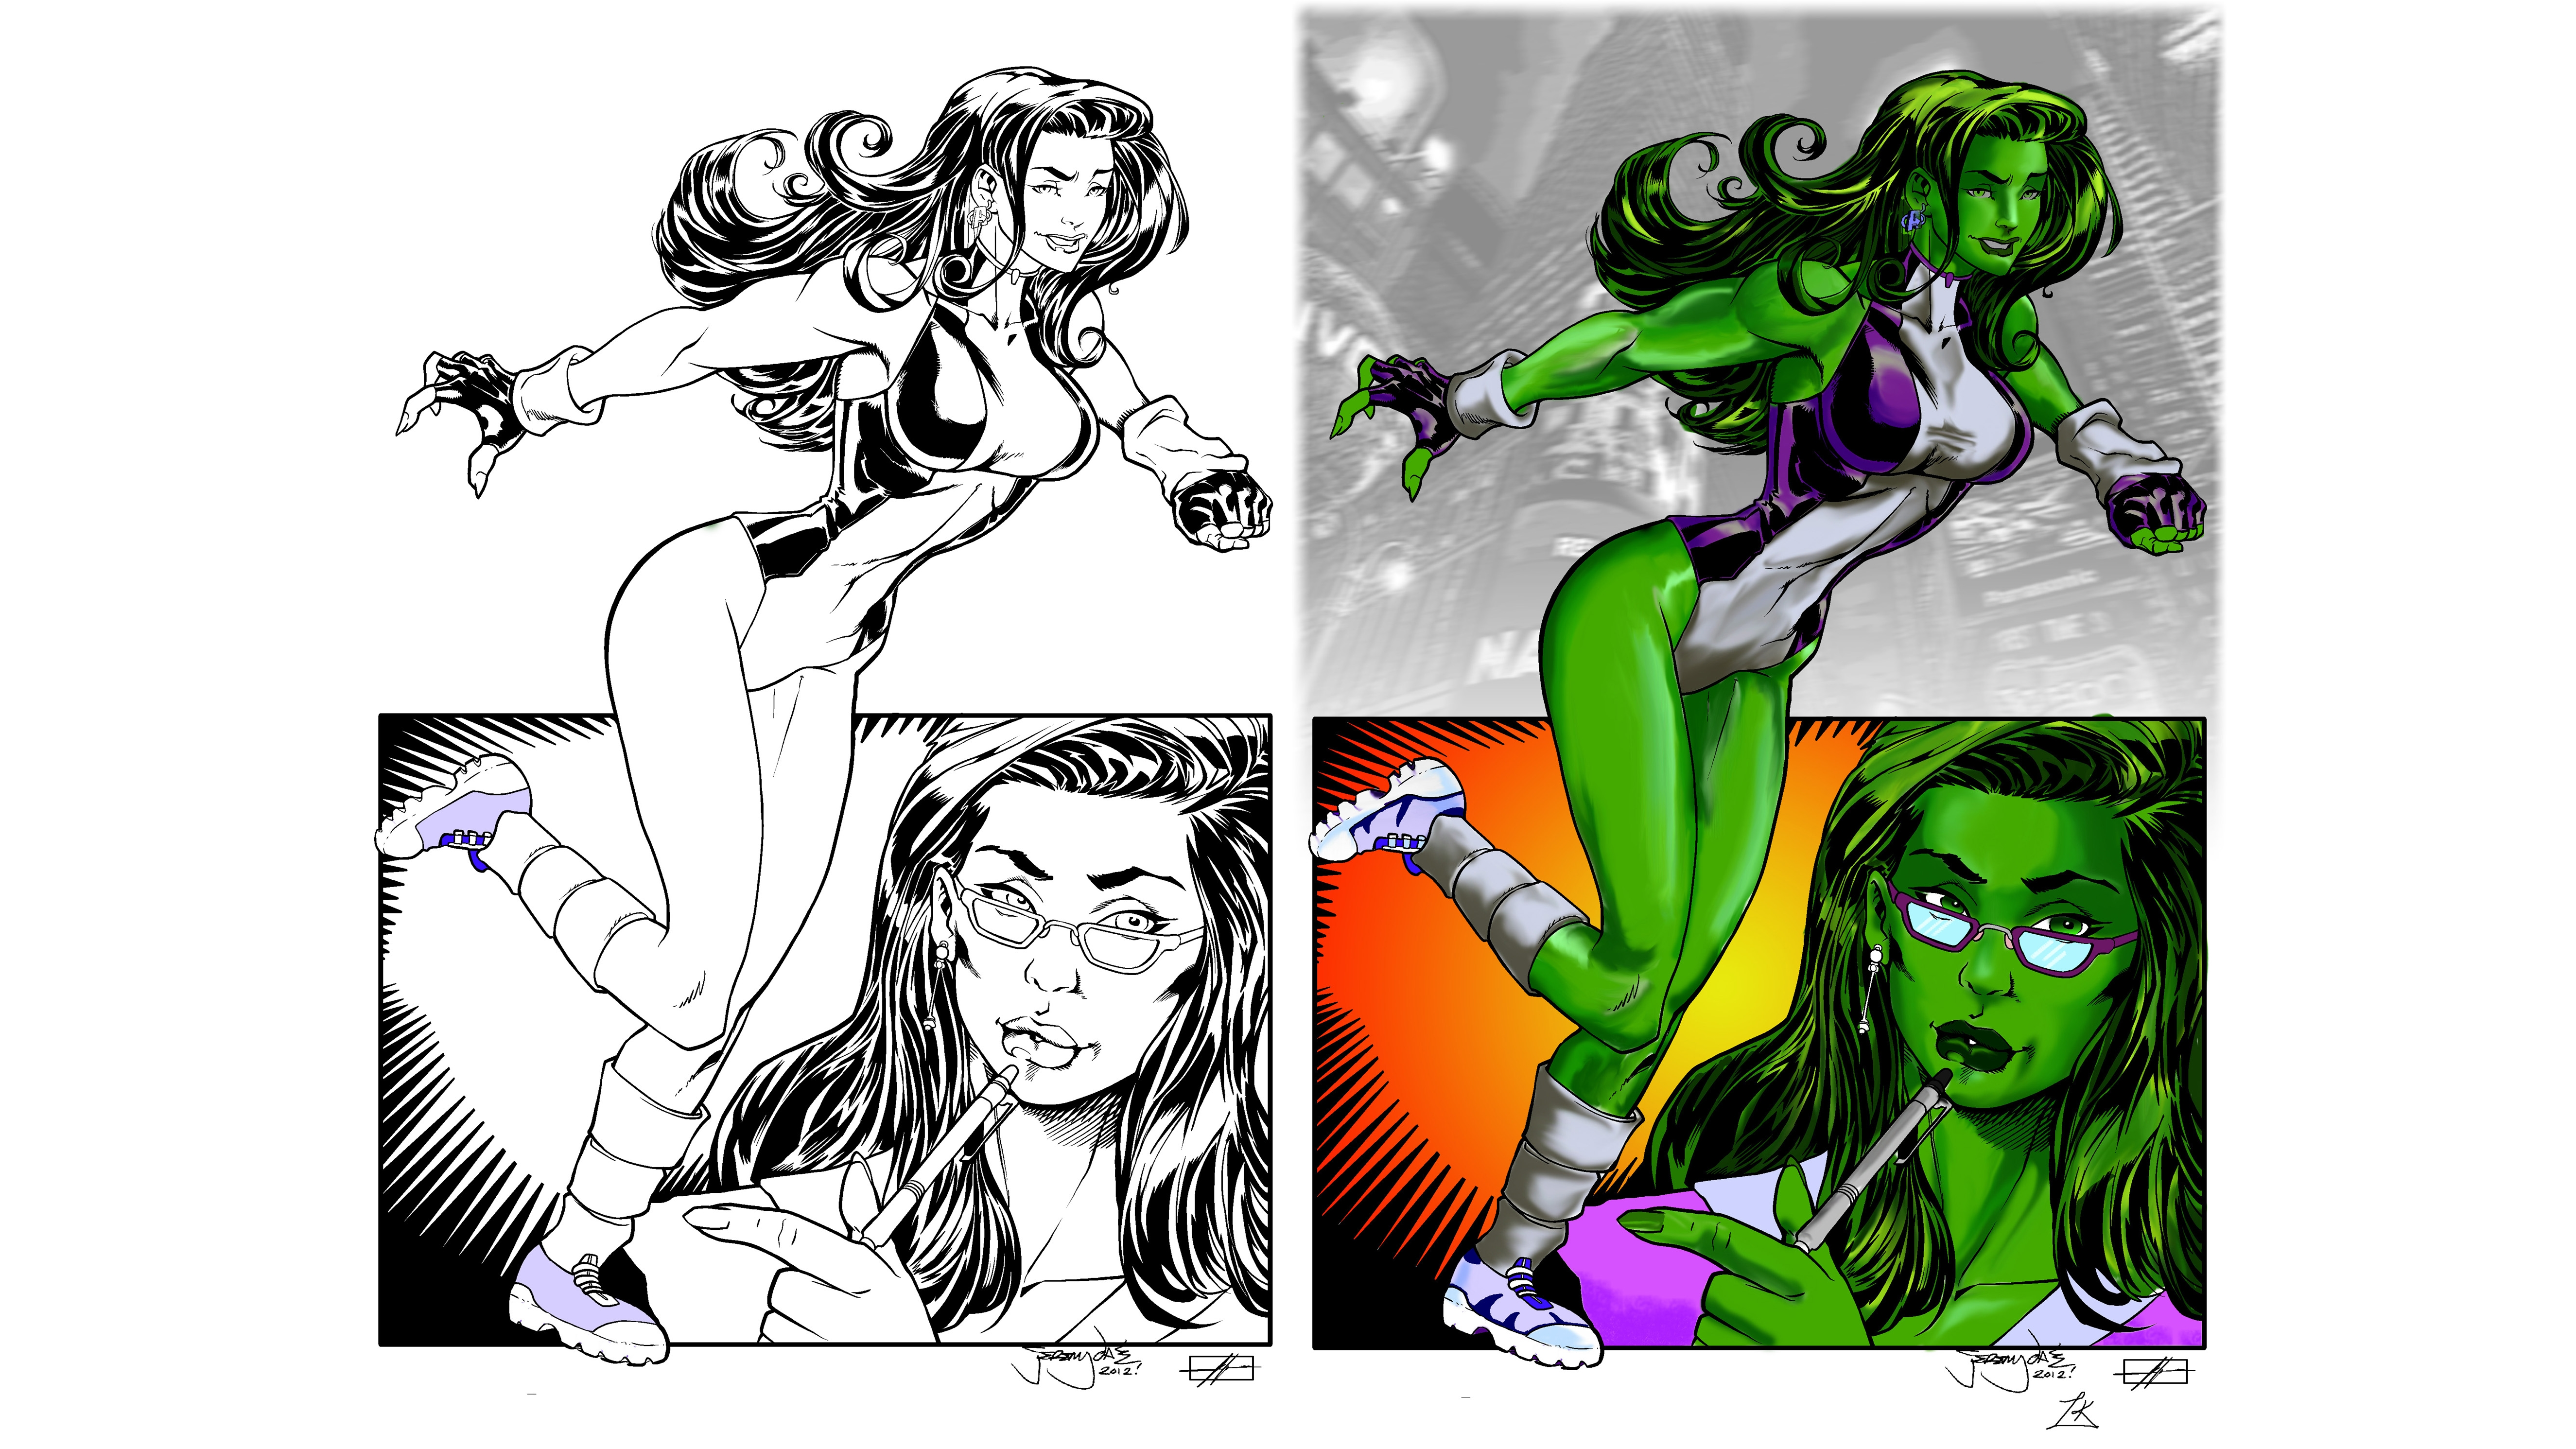 She Hulk Computer Wallpapers Desktop Backgrounds 5300x2981